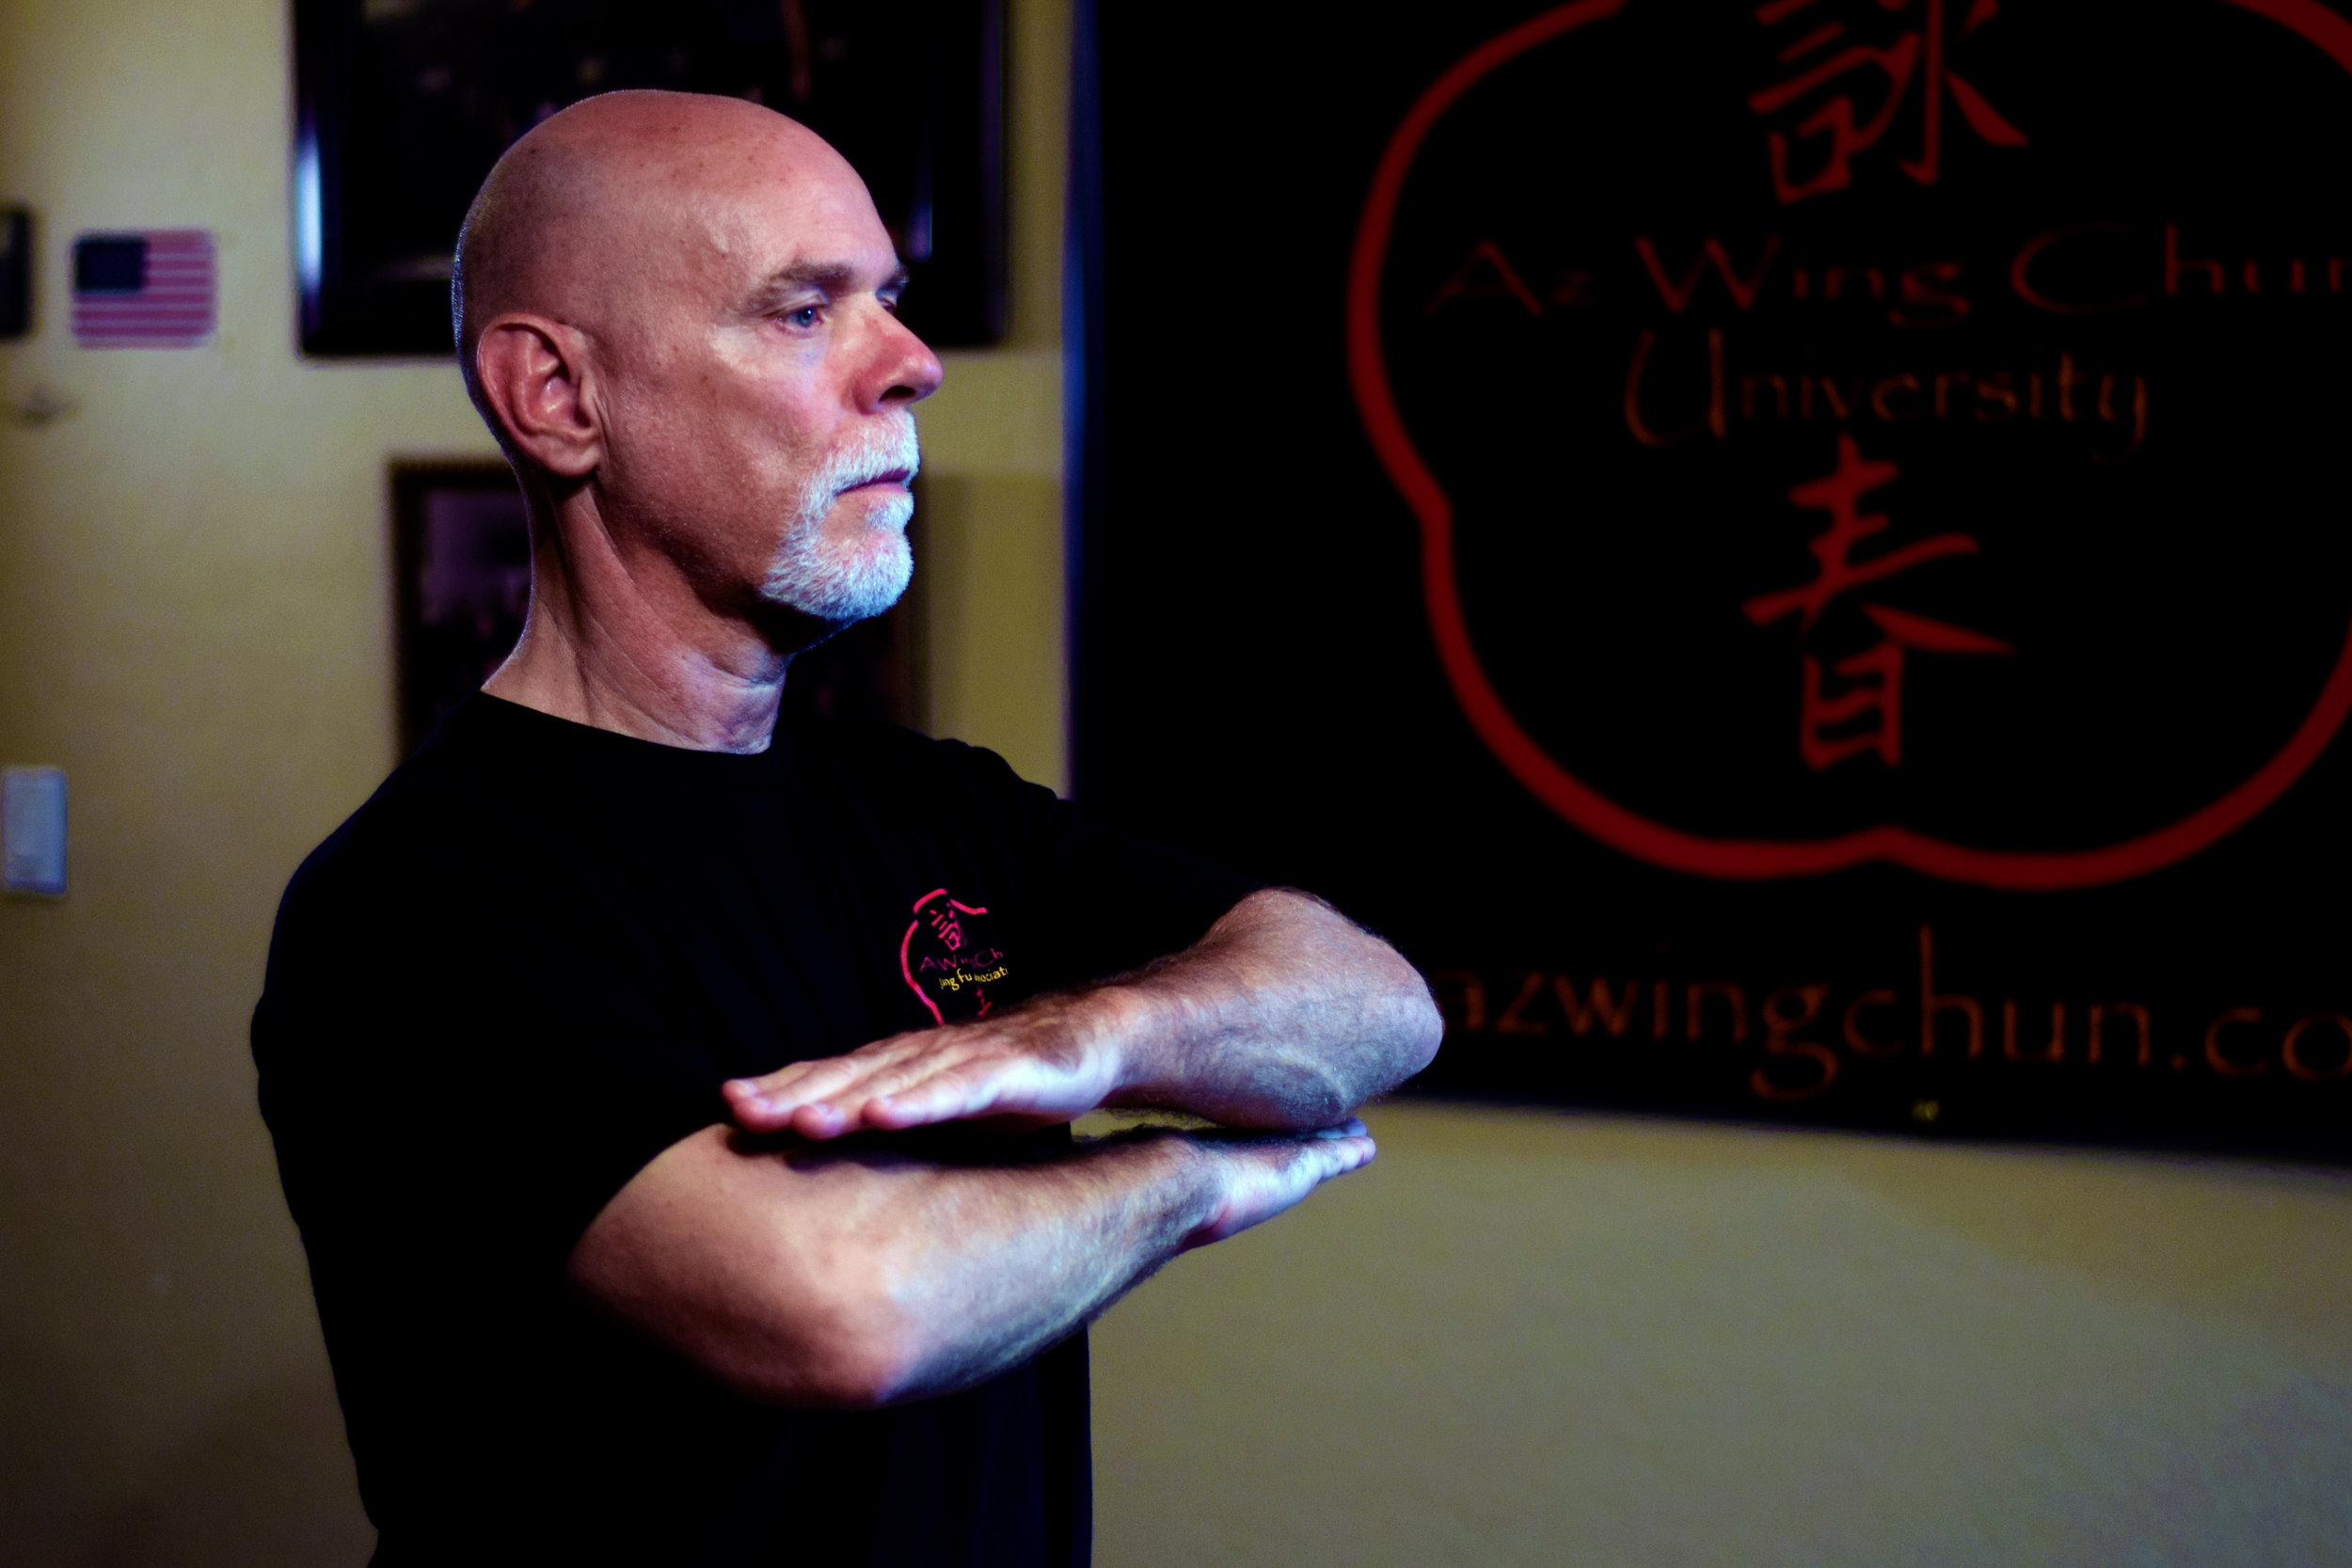 The Chum Kiu Form is an essential element in building your body unity.